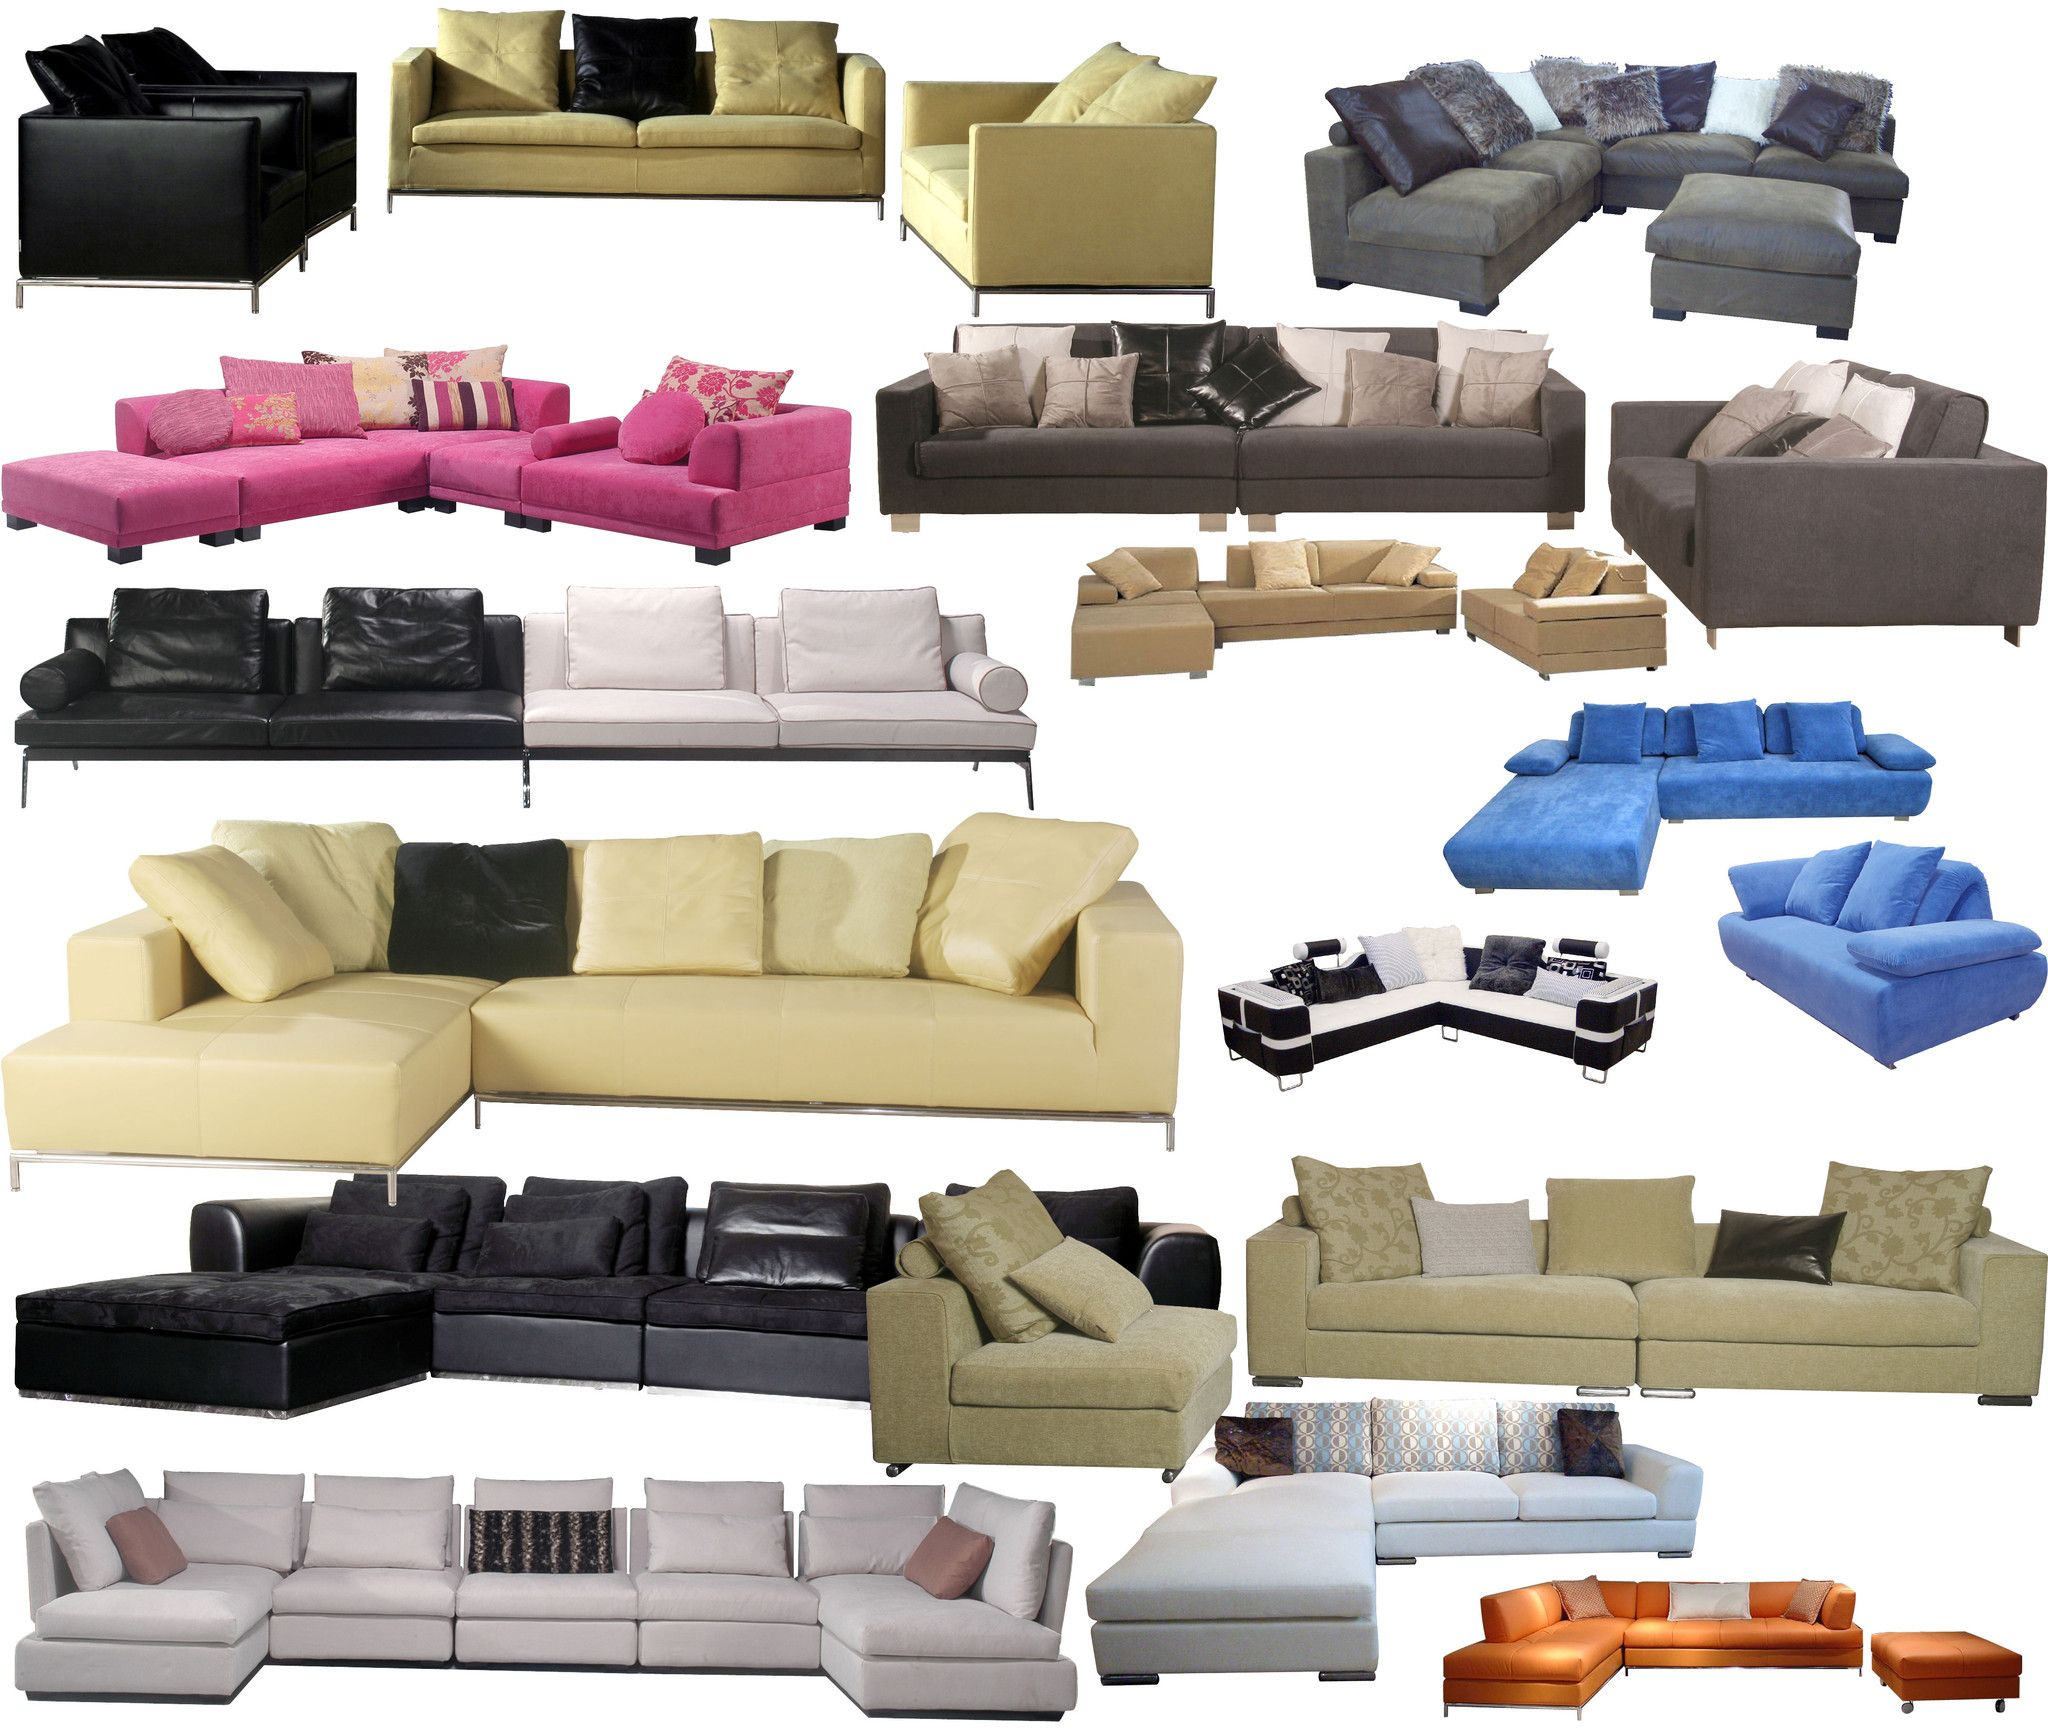 Photoshop psd sofa and chair blocks v cad design free